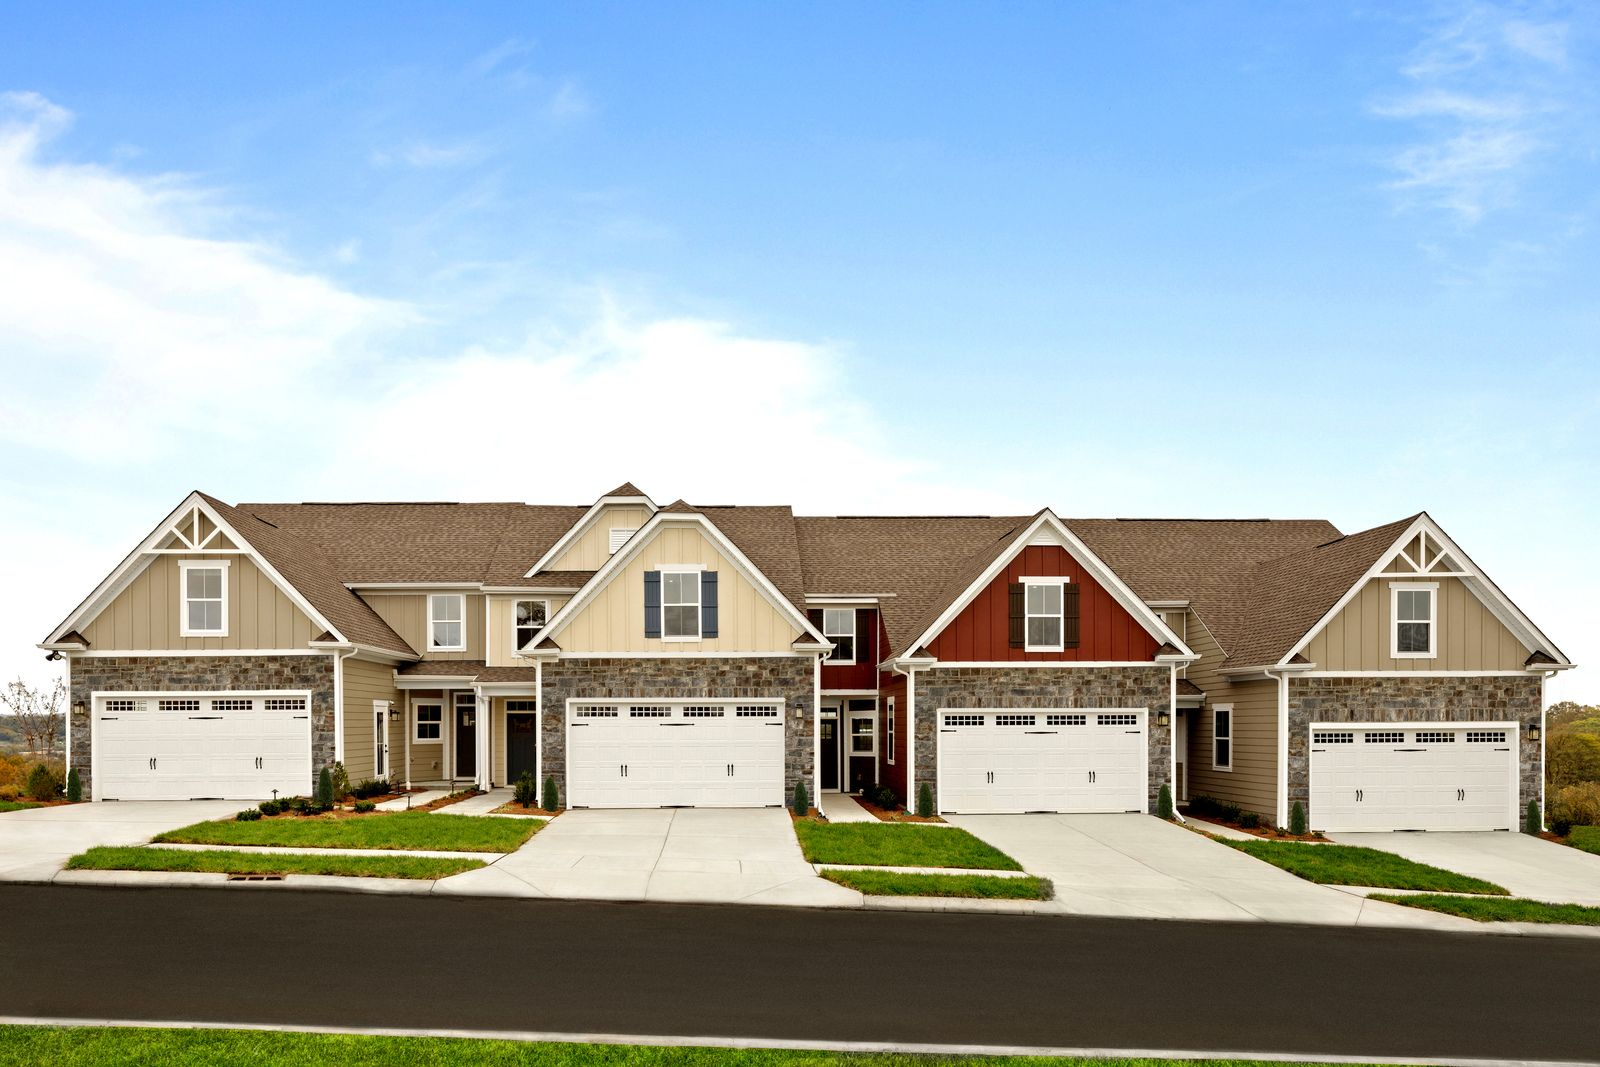 Welcome to the only new townhome community in liberty township with easy living!:Spacious, upscale open-concept townhomes with full basements and 2 car garages. Community amenities include lawn care, snow removal, exterior maintenance, walking trails, community pool & clubhouse.